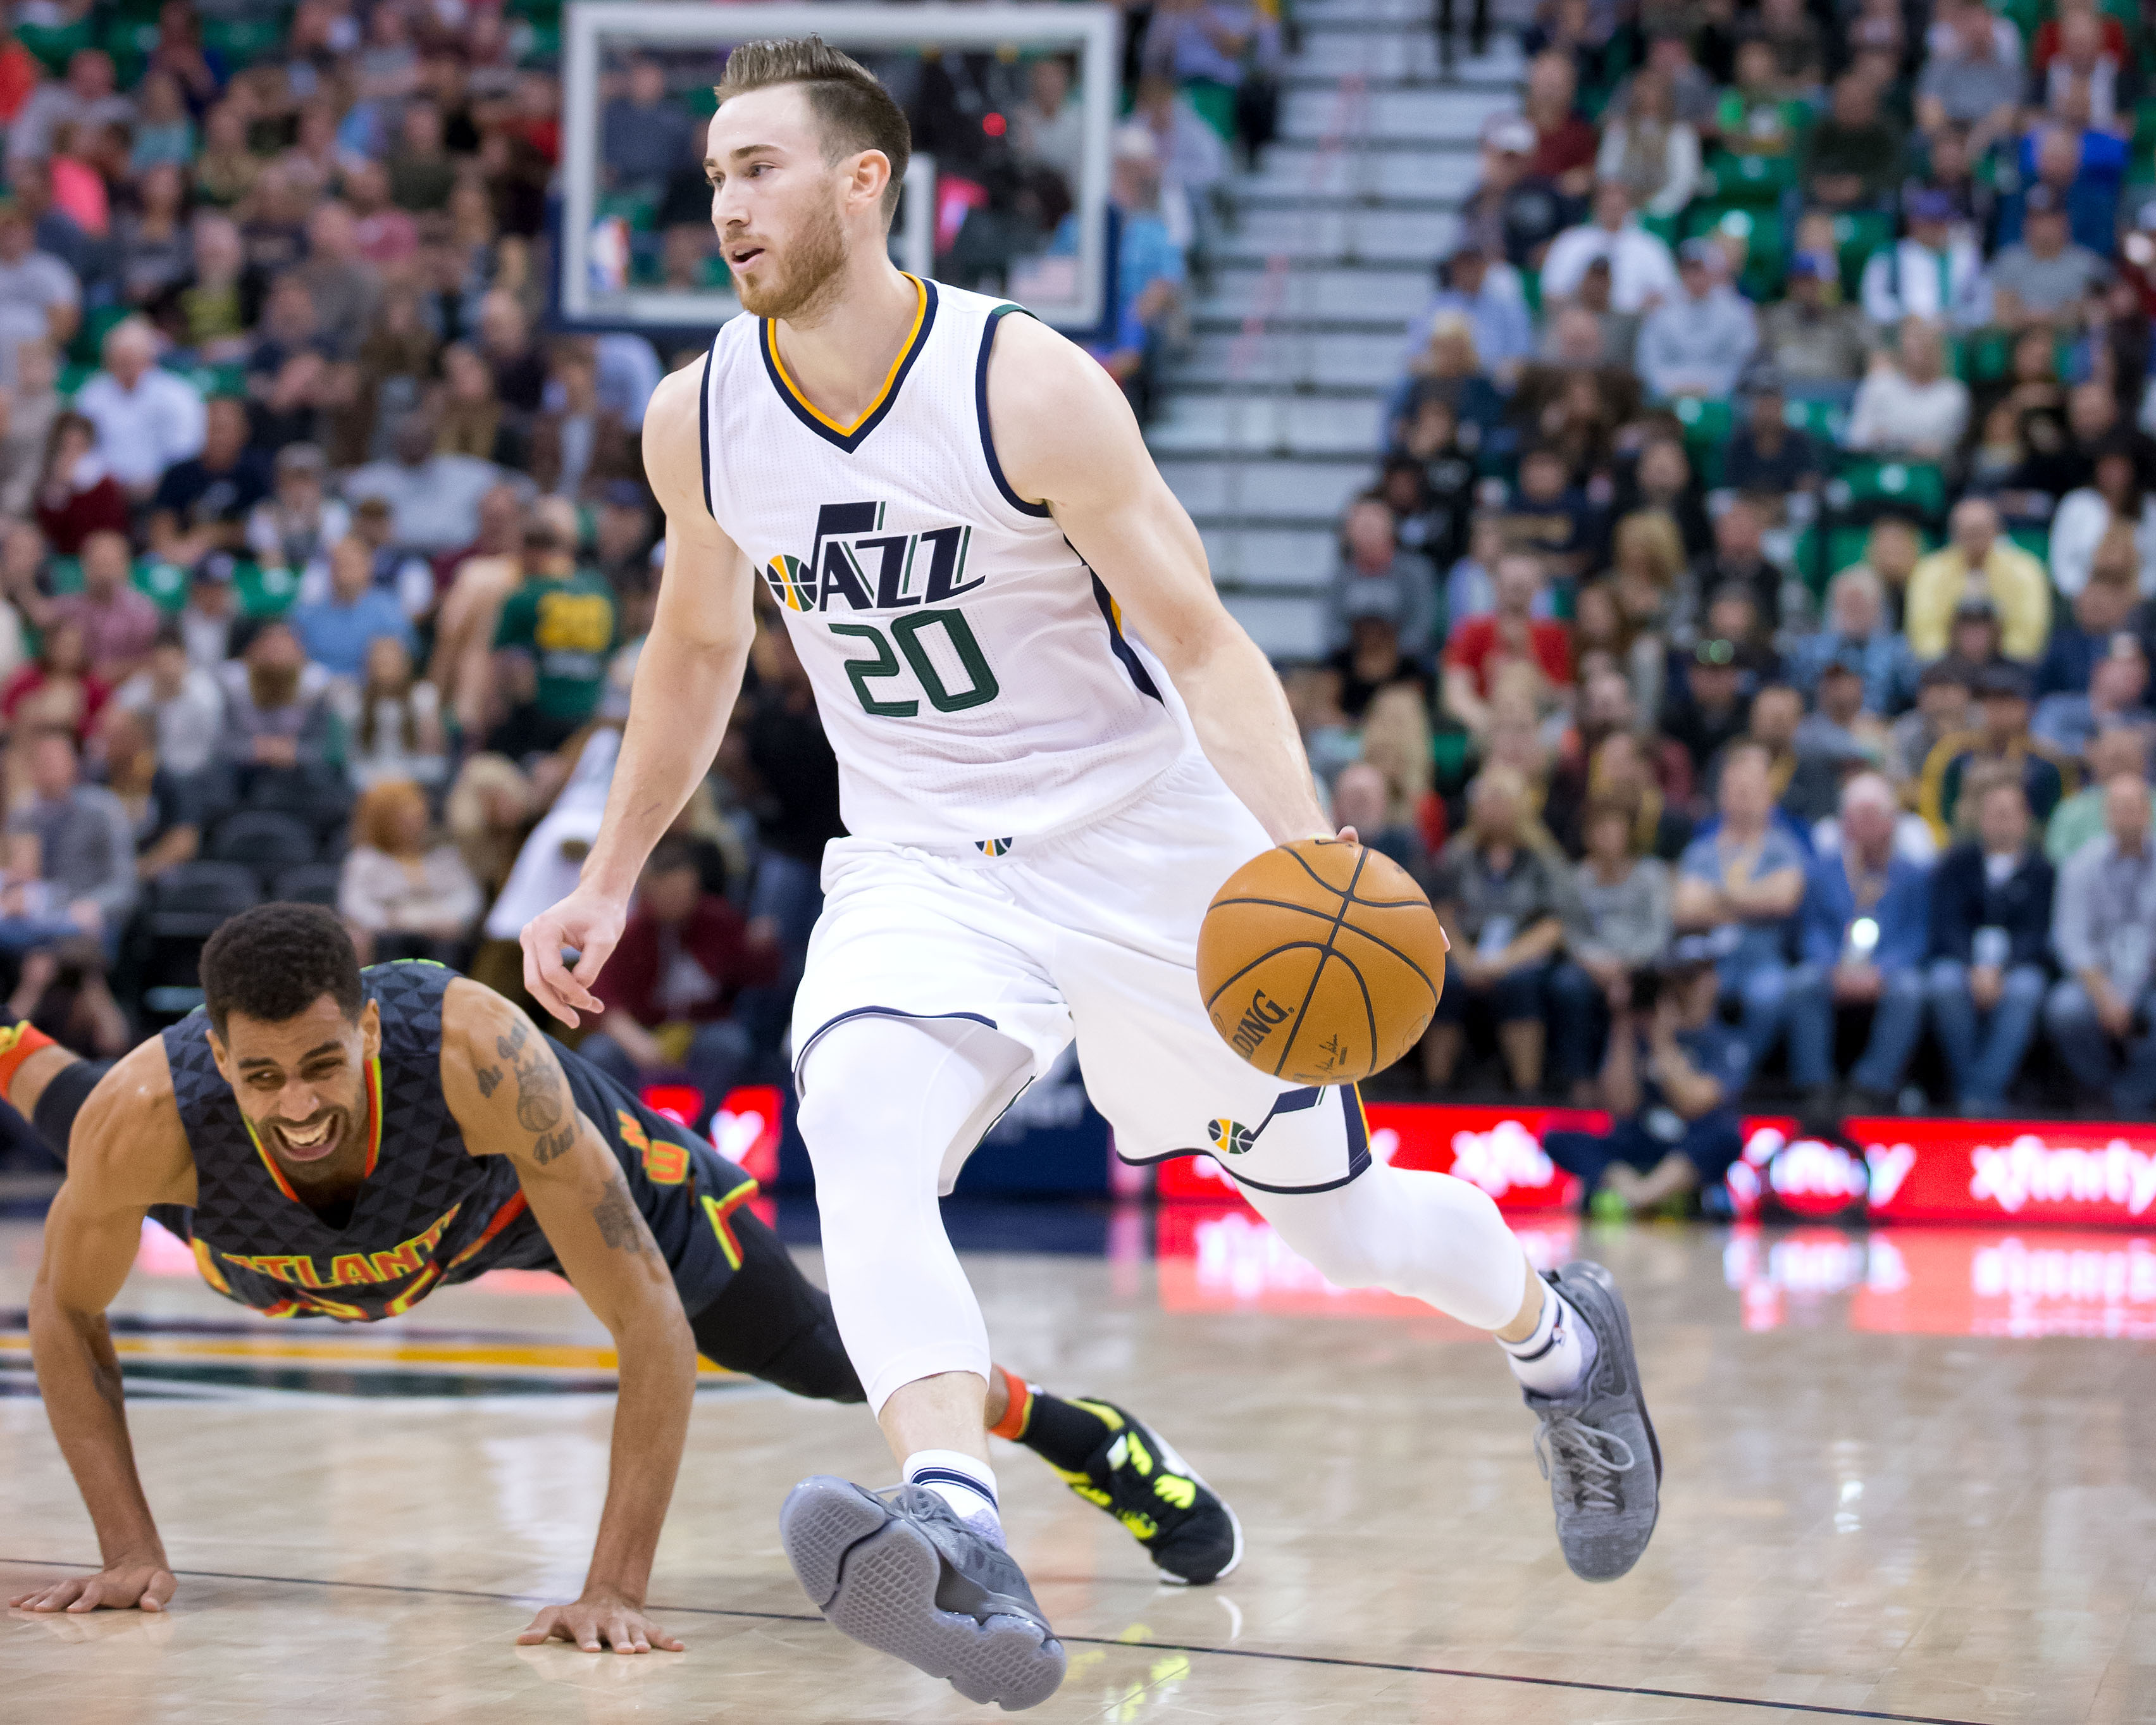 Nba Game Tonight Pacific Time   Basketball Scores